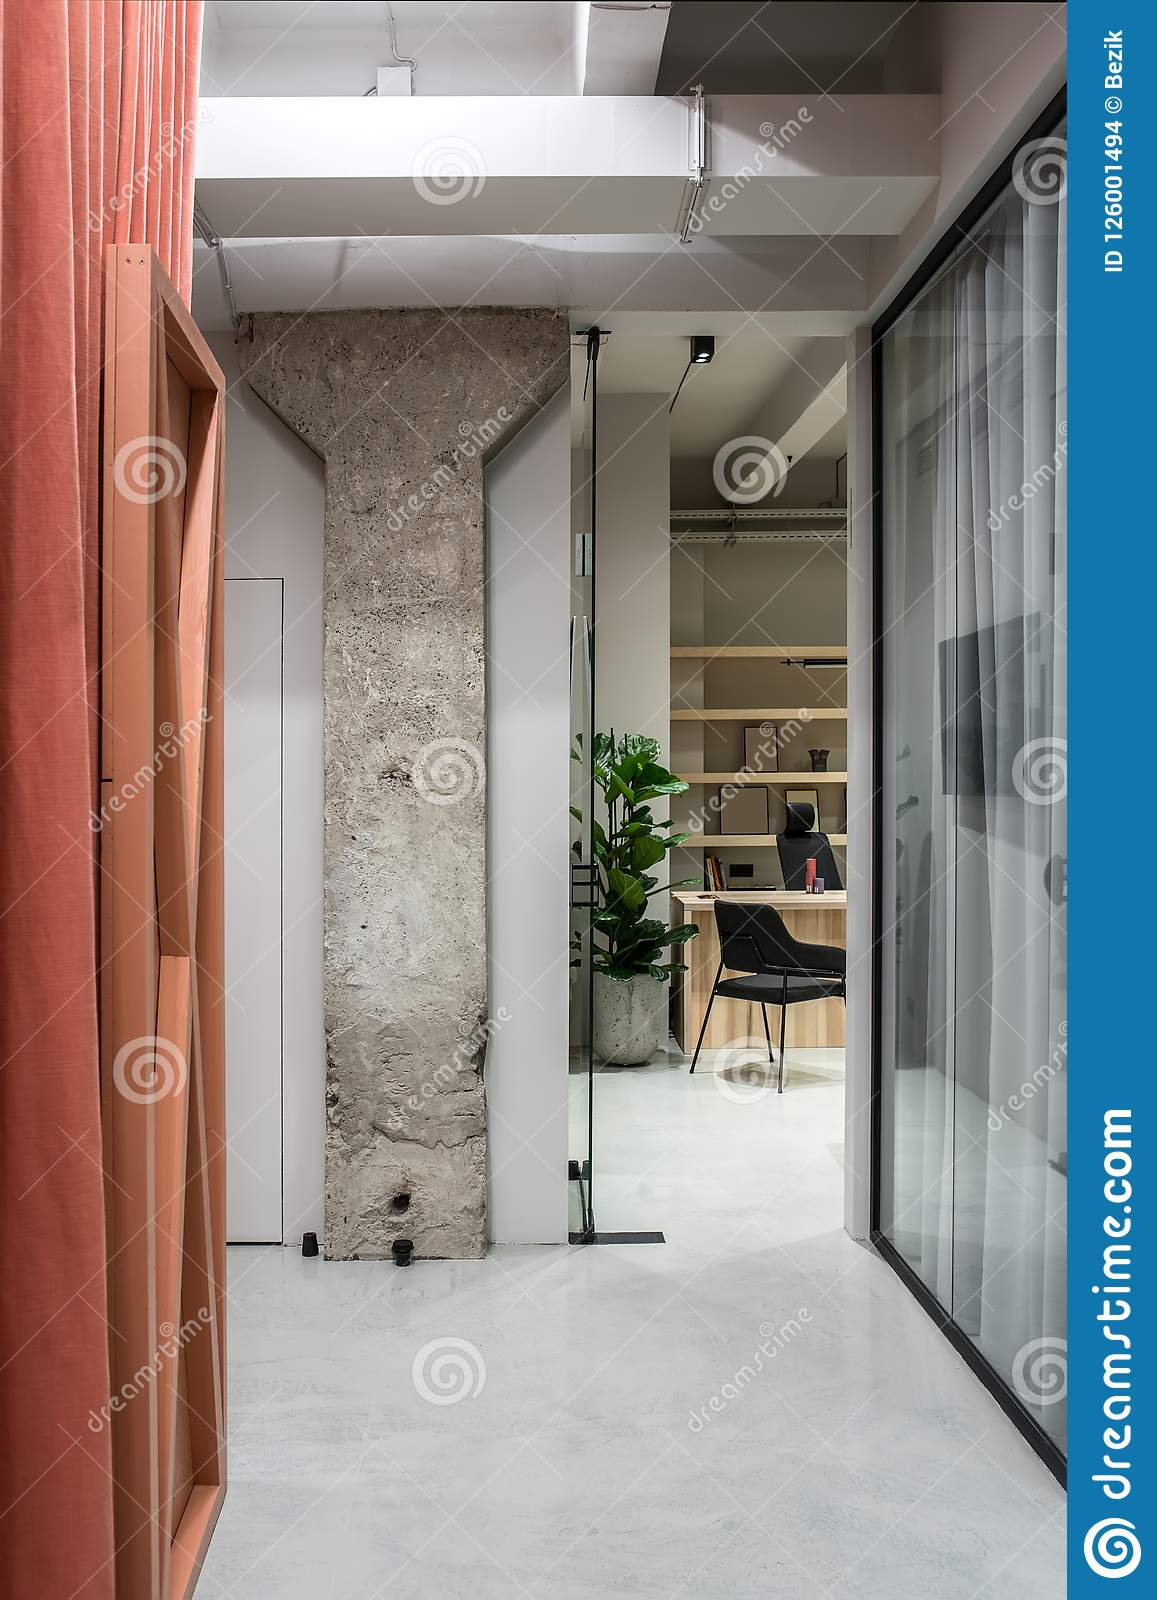 Concrete Rooms Stylish Interior In Loft Style With Gray Walls Stock Photo Image